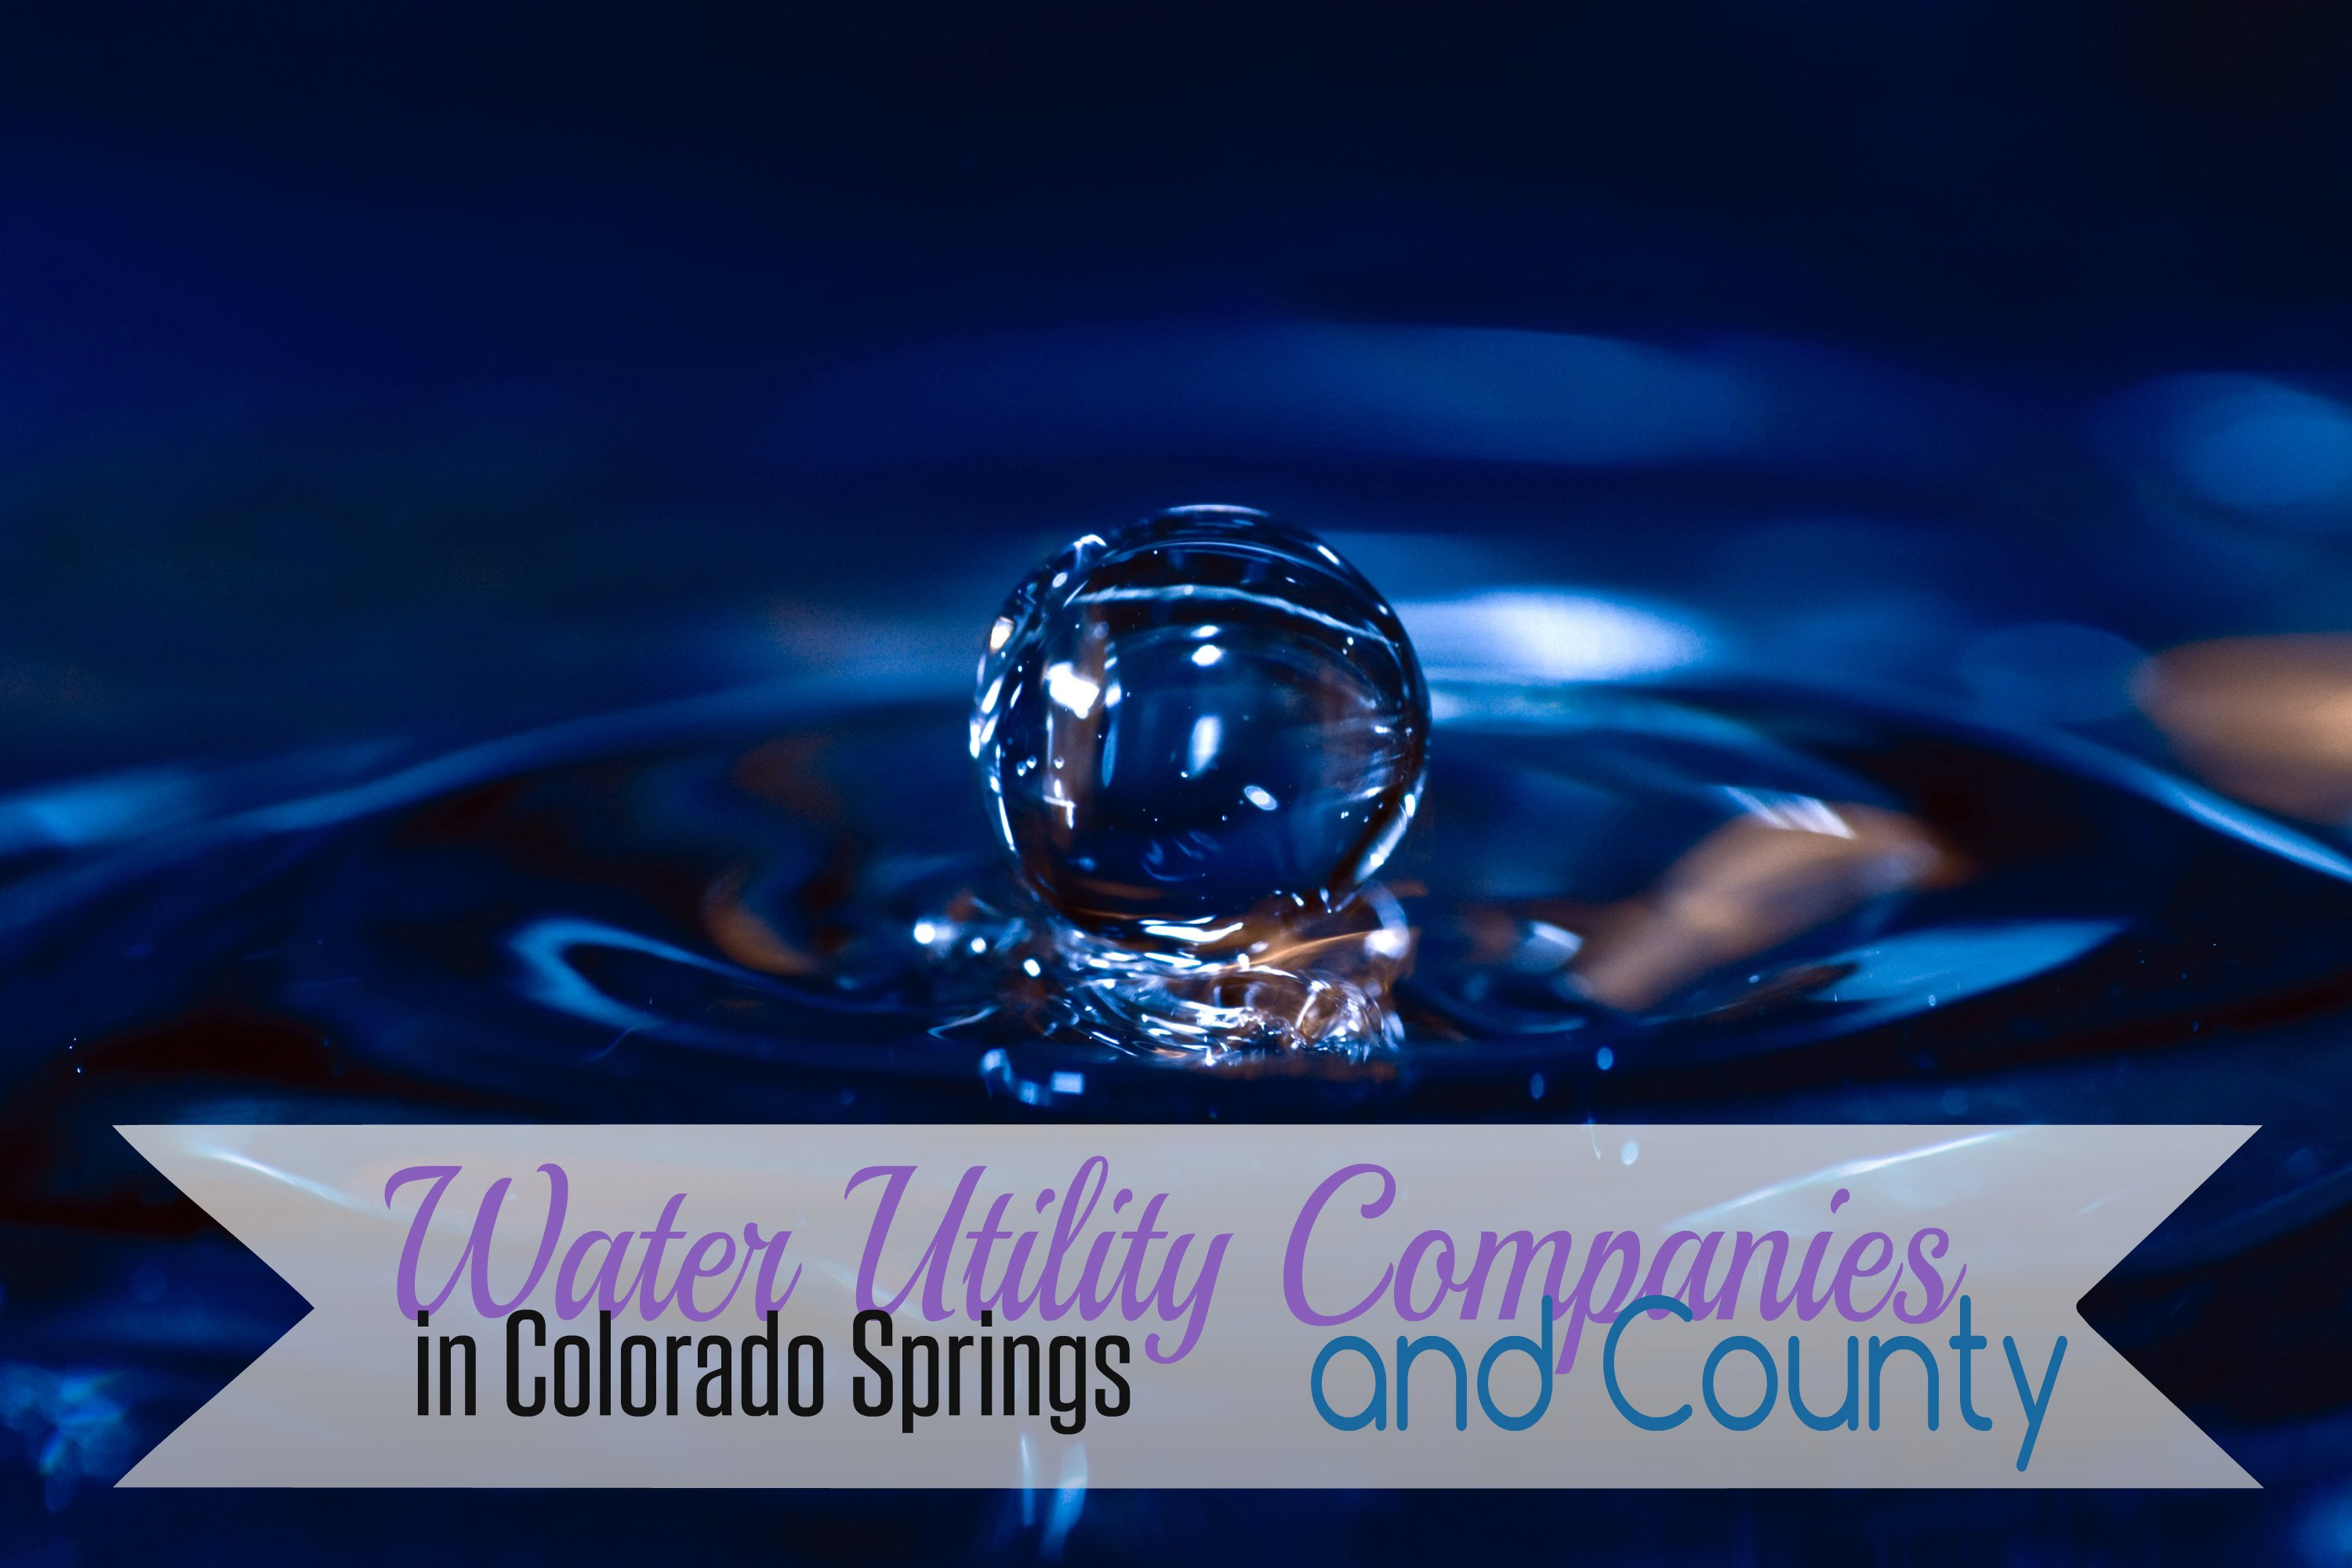 Water utilities company colorado springs